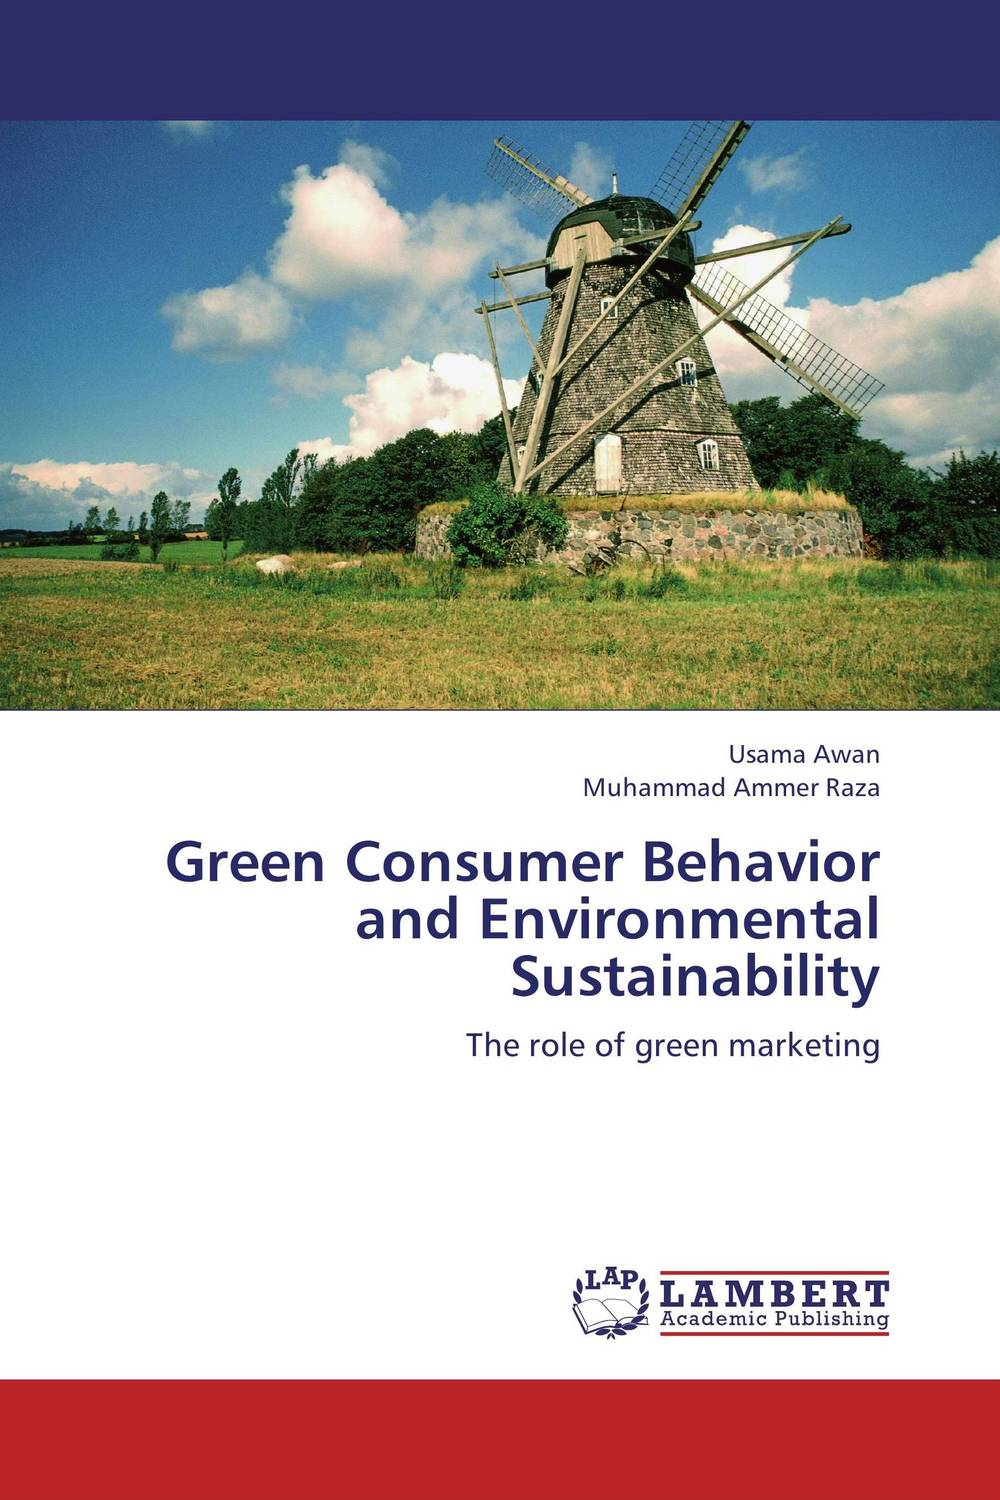 Green Consumer Behavior and Environmental Sustainability